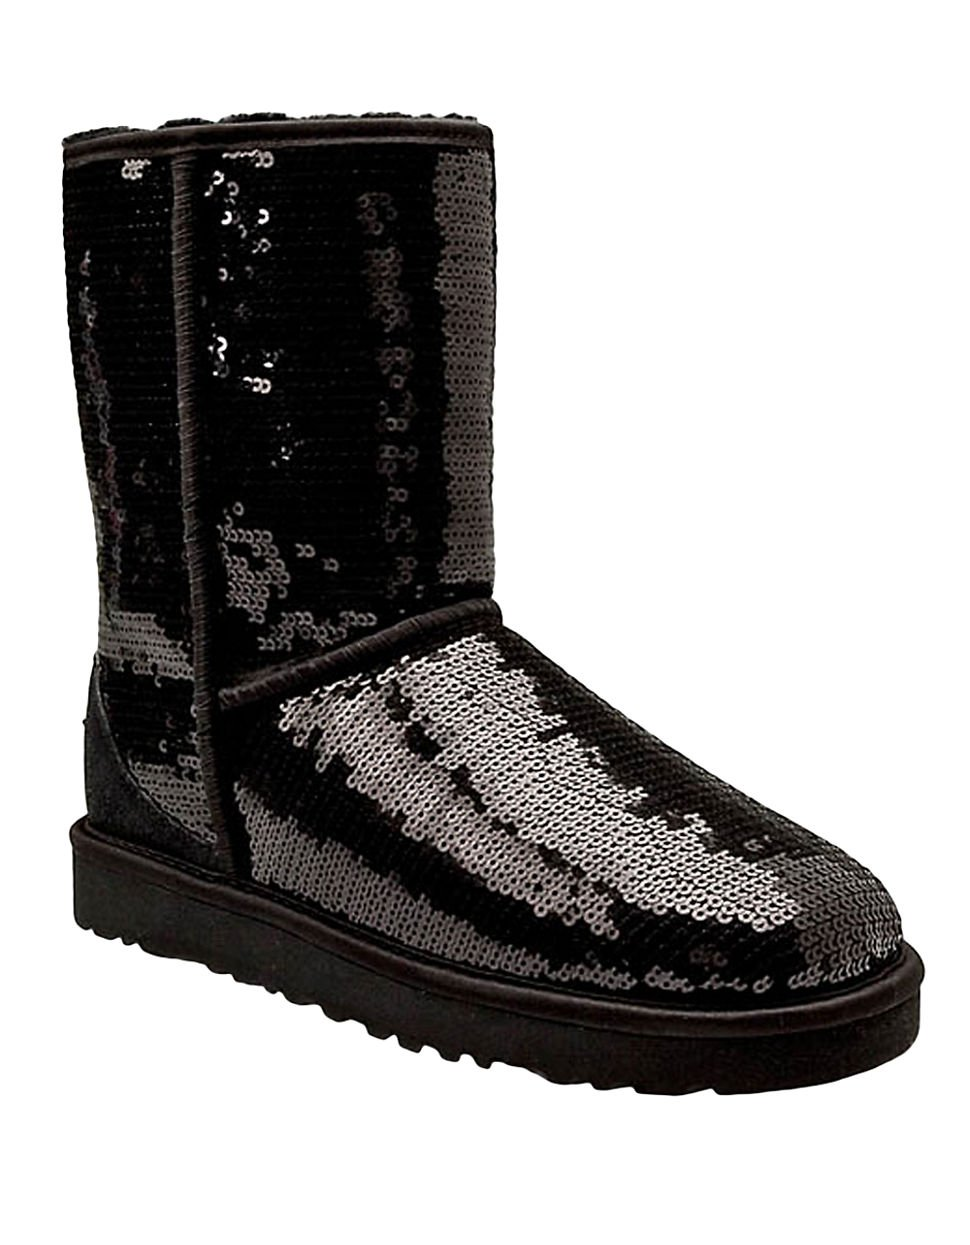 ugg australia classic short sparkle boots. Black Bedroom Furniture Sets. Home Design Ideas